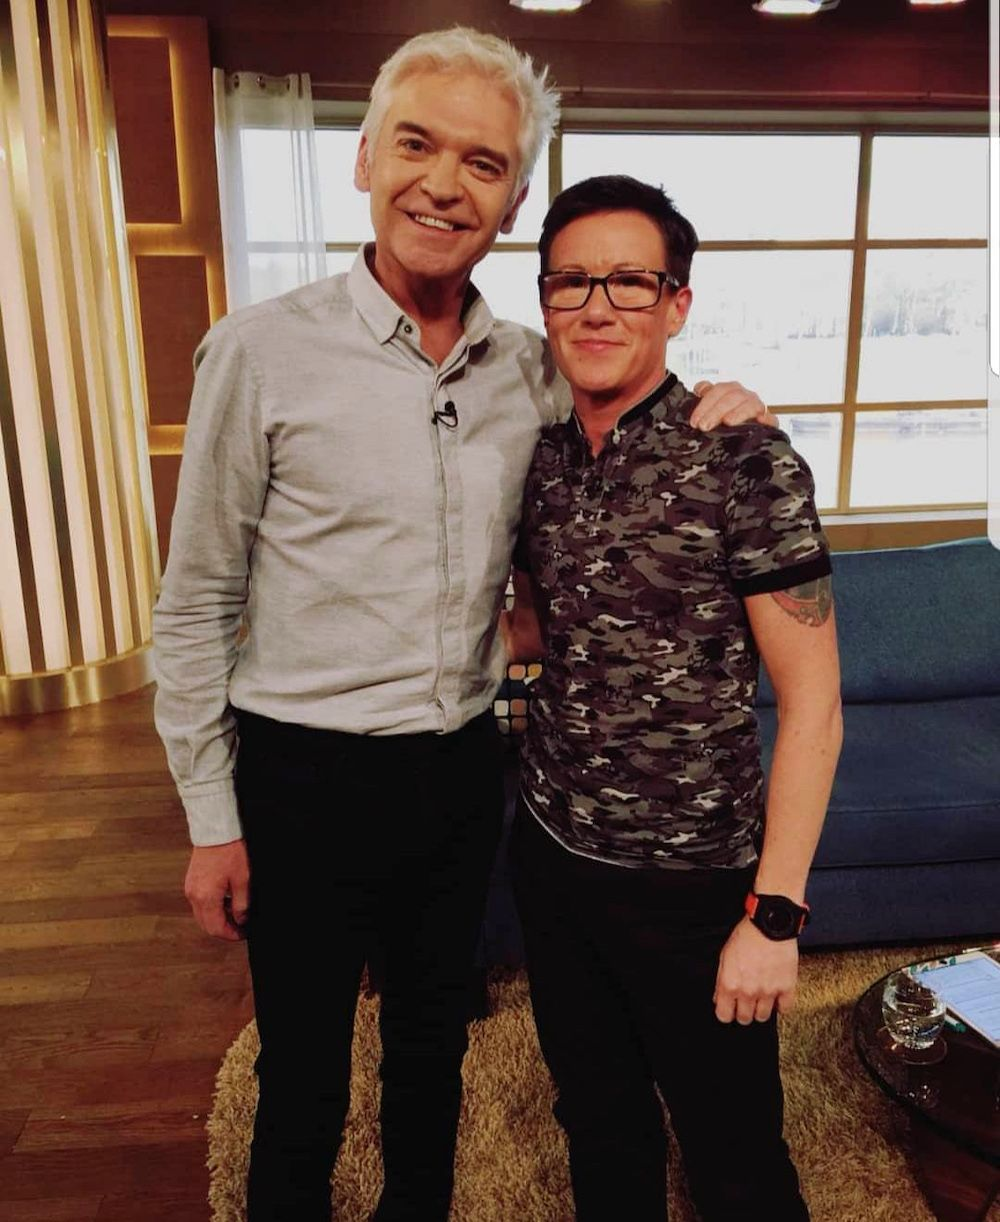 Bruce and Phillip Schofield